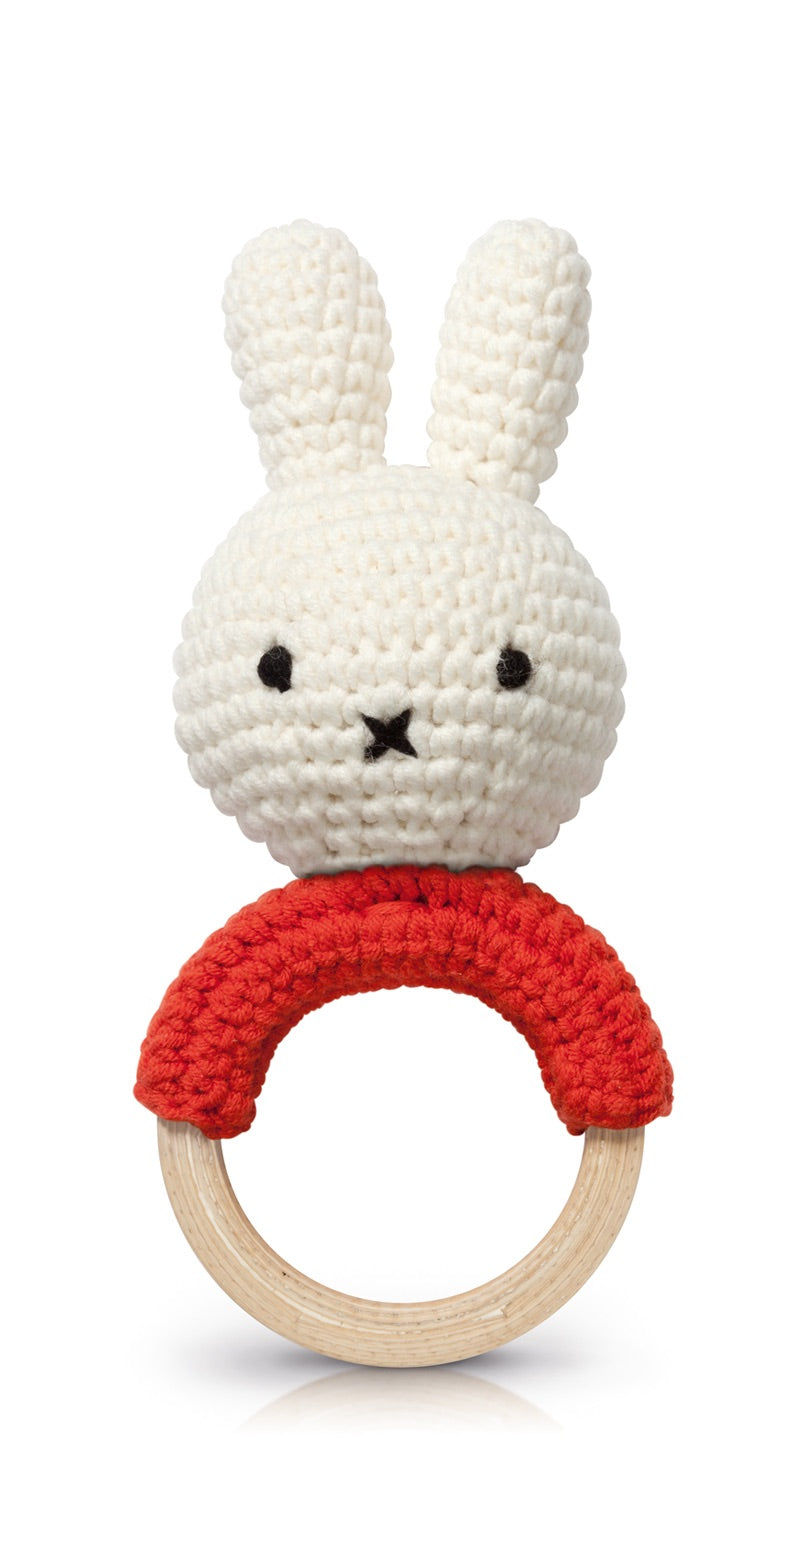 Miffy Handmade Teething Rattle - Red